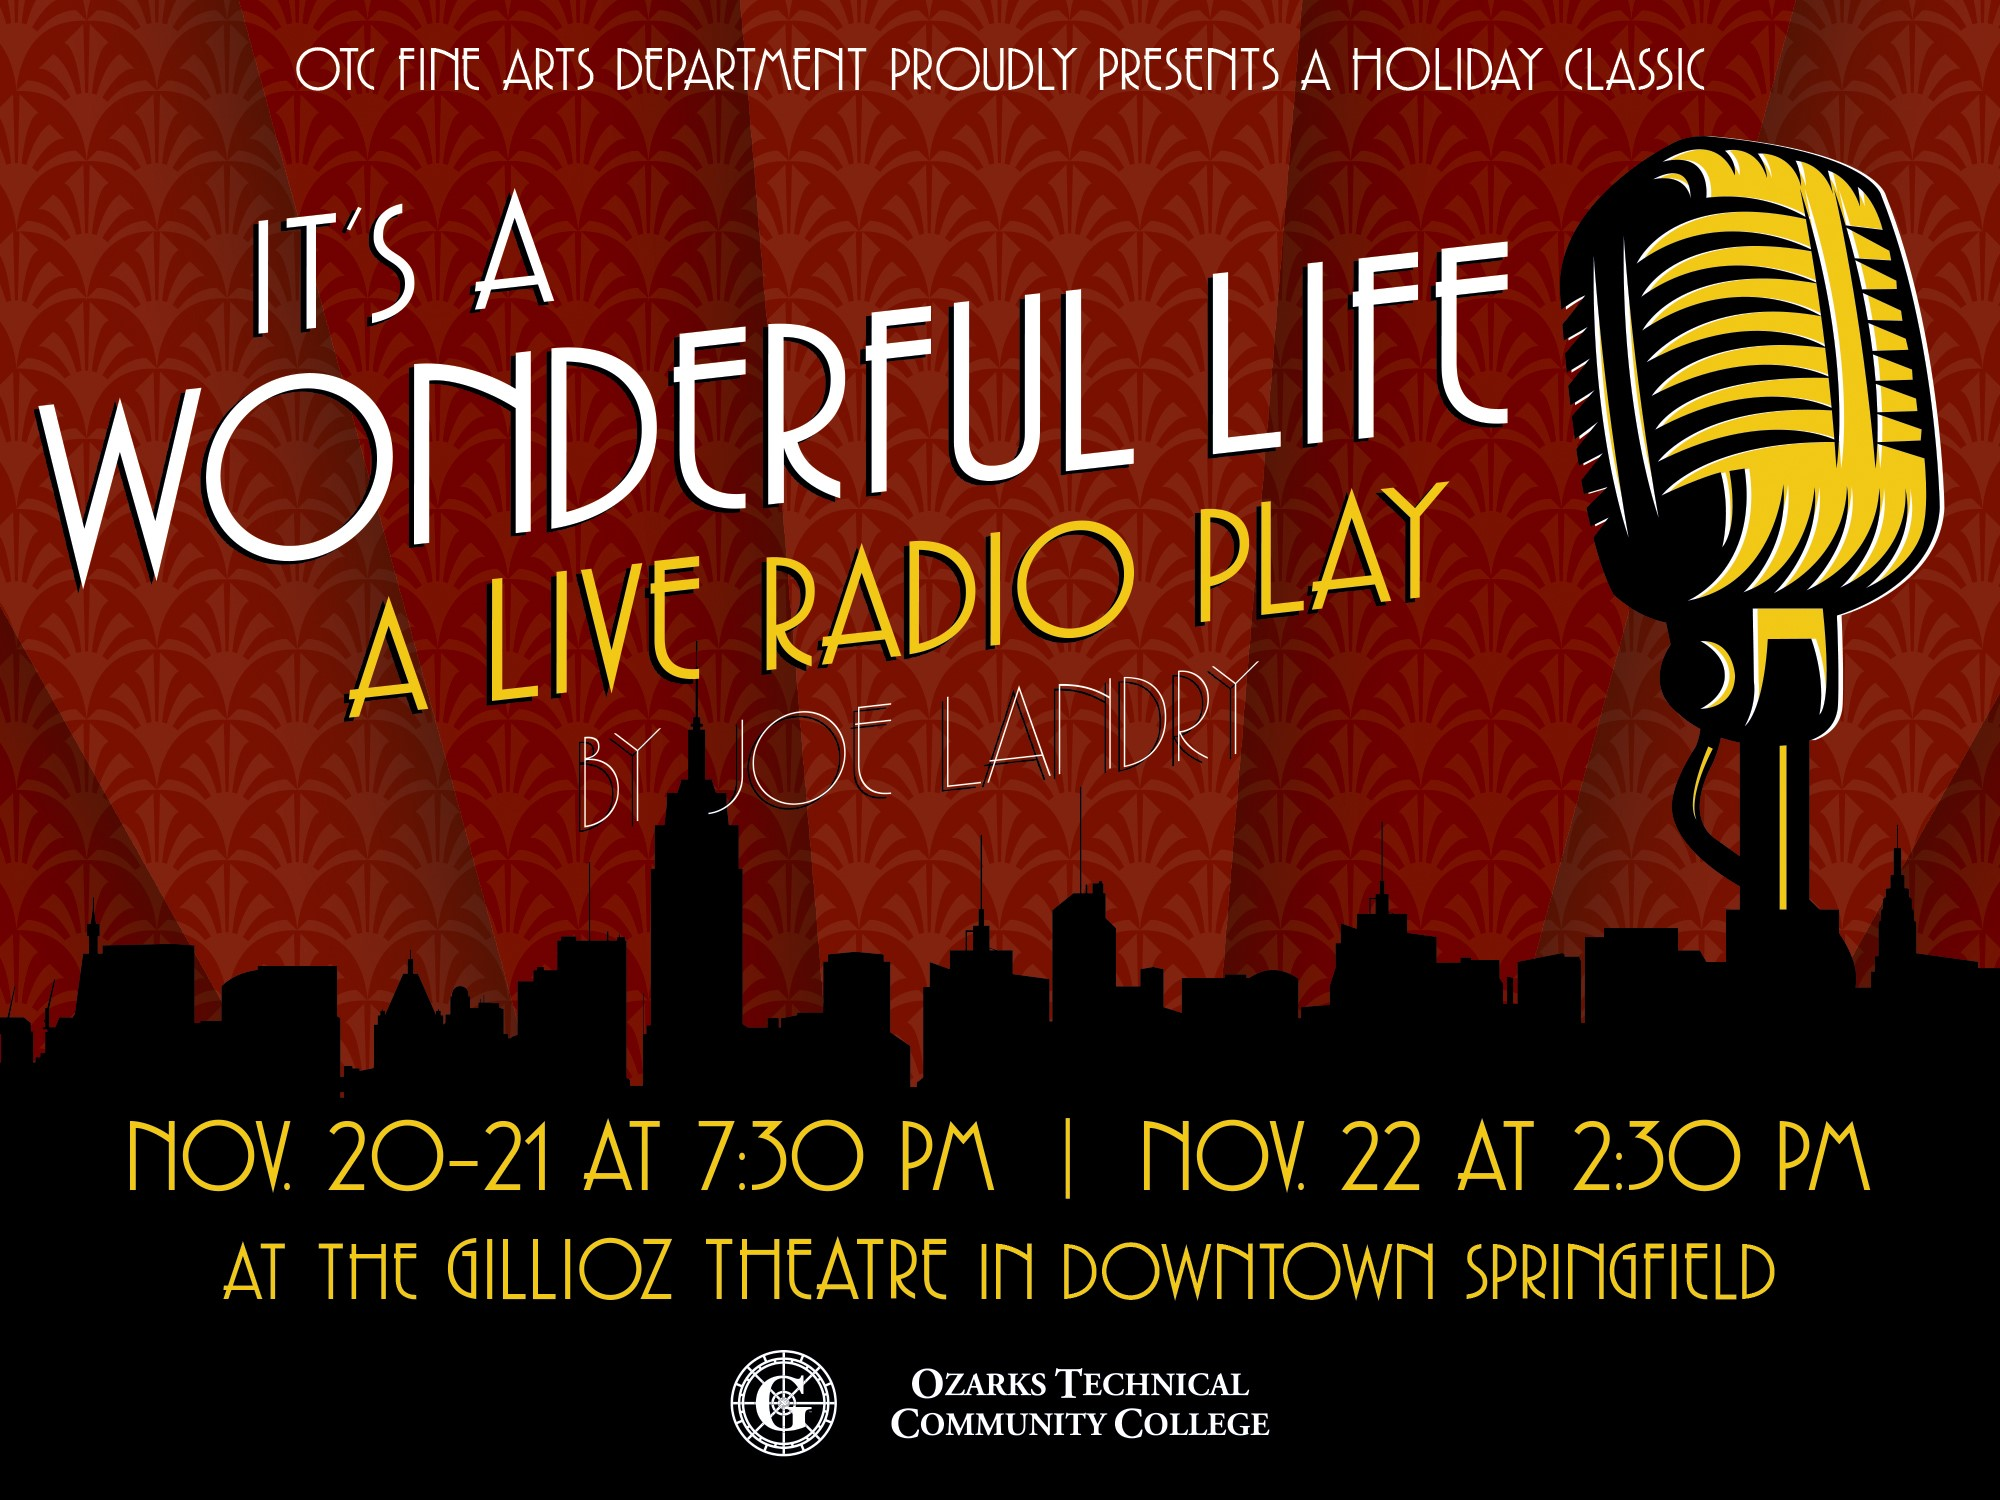 Otc Presents It 39 S A Wonderful Life A Live Radio Play